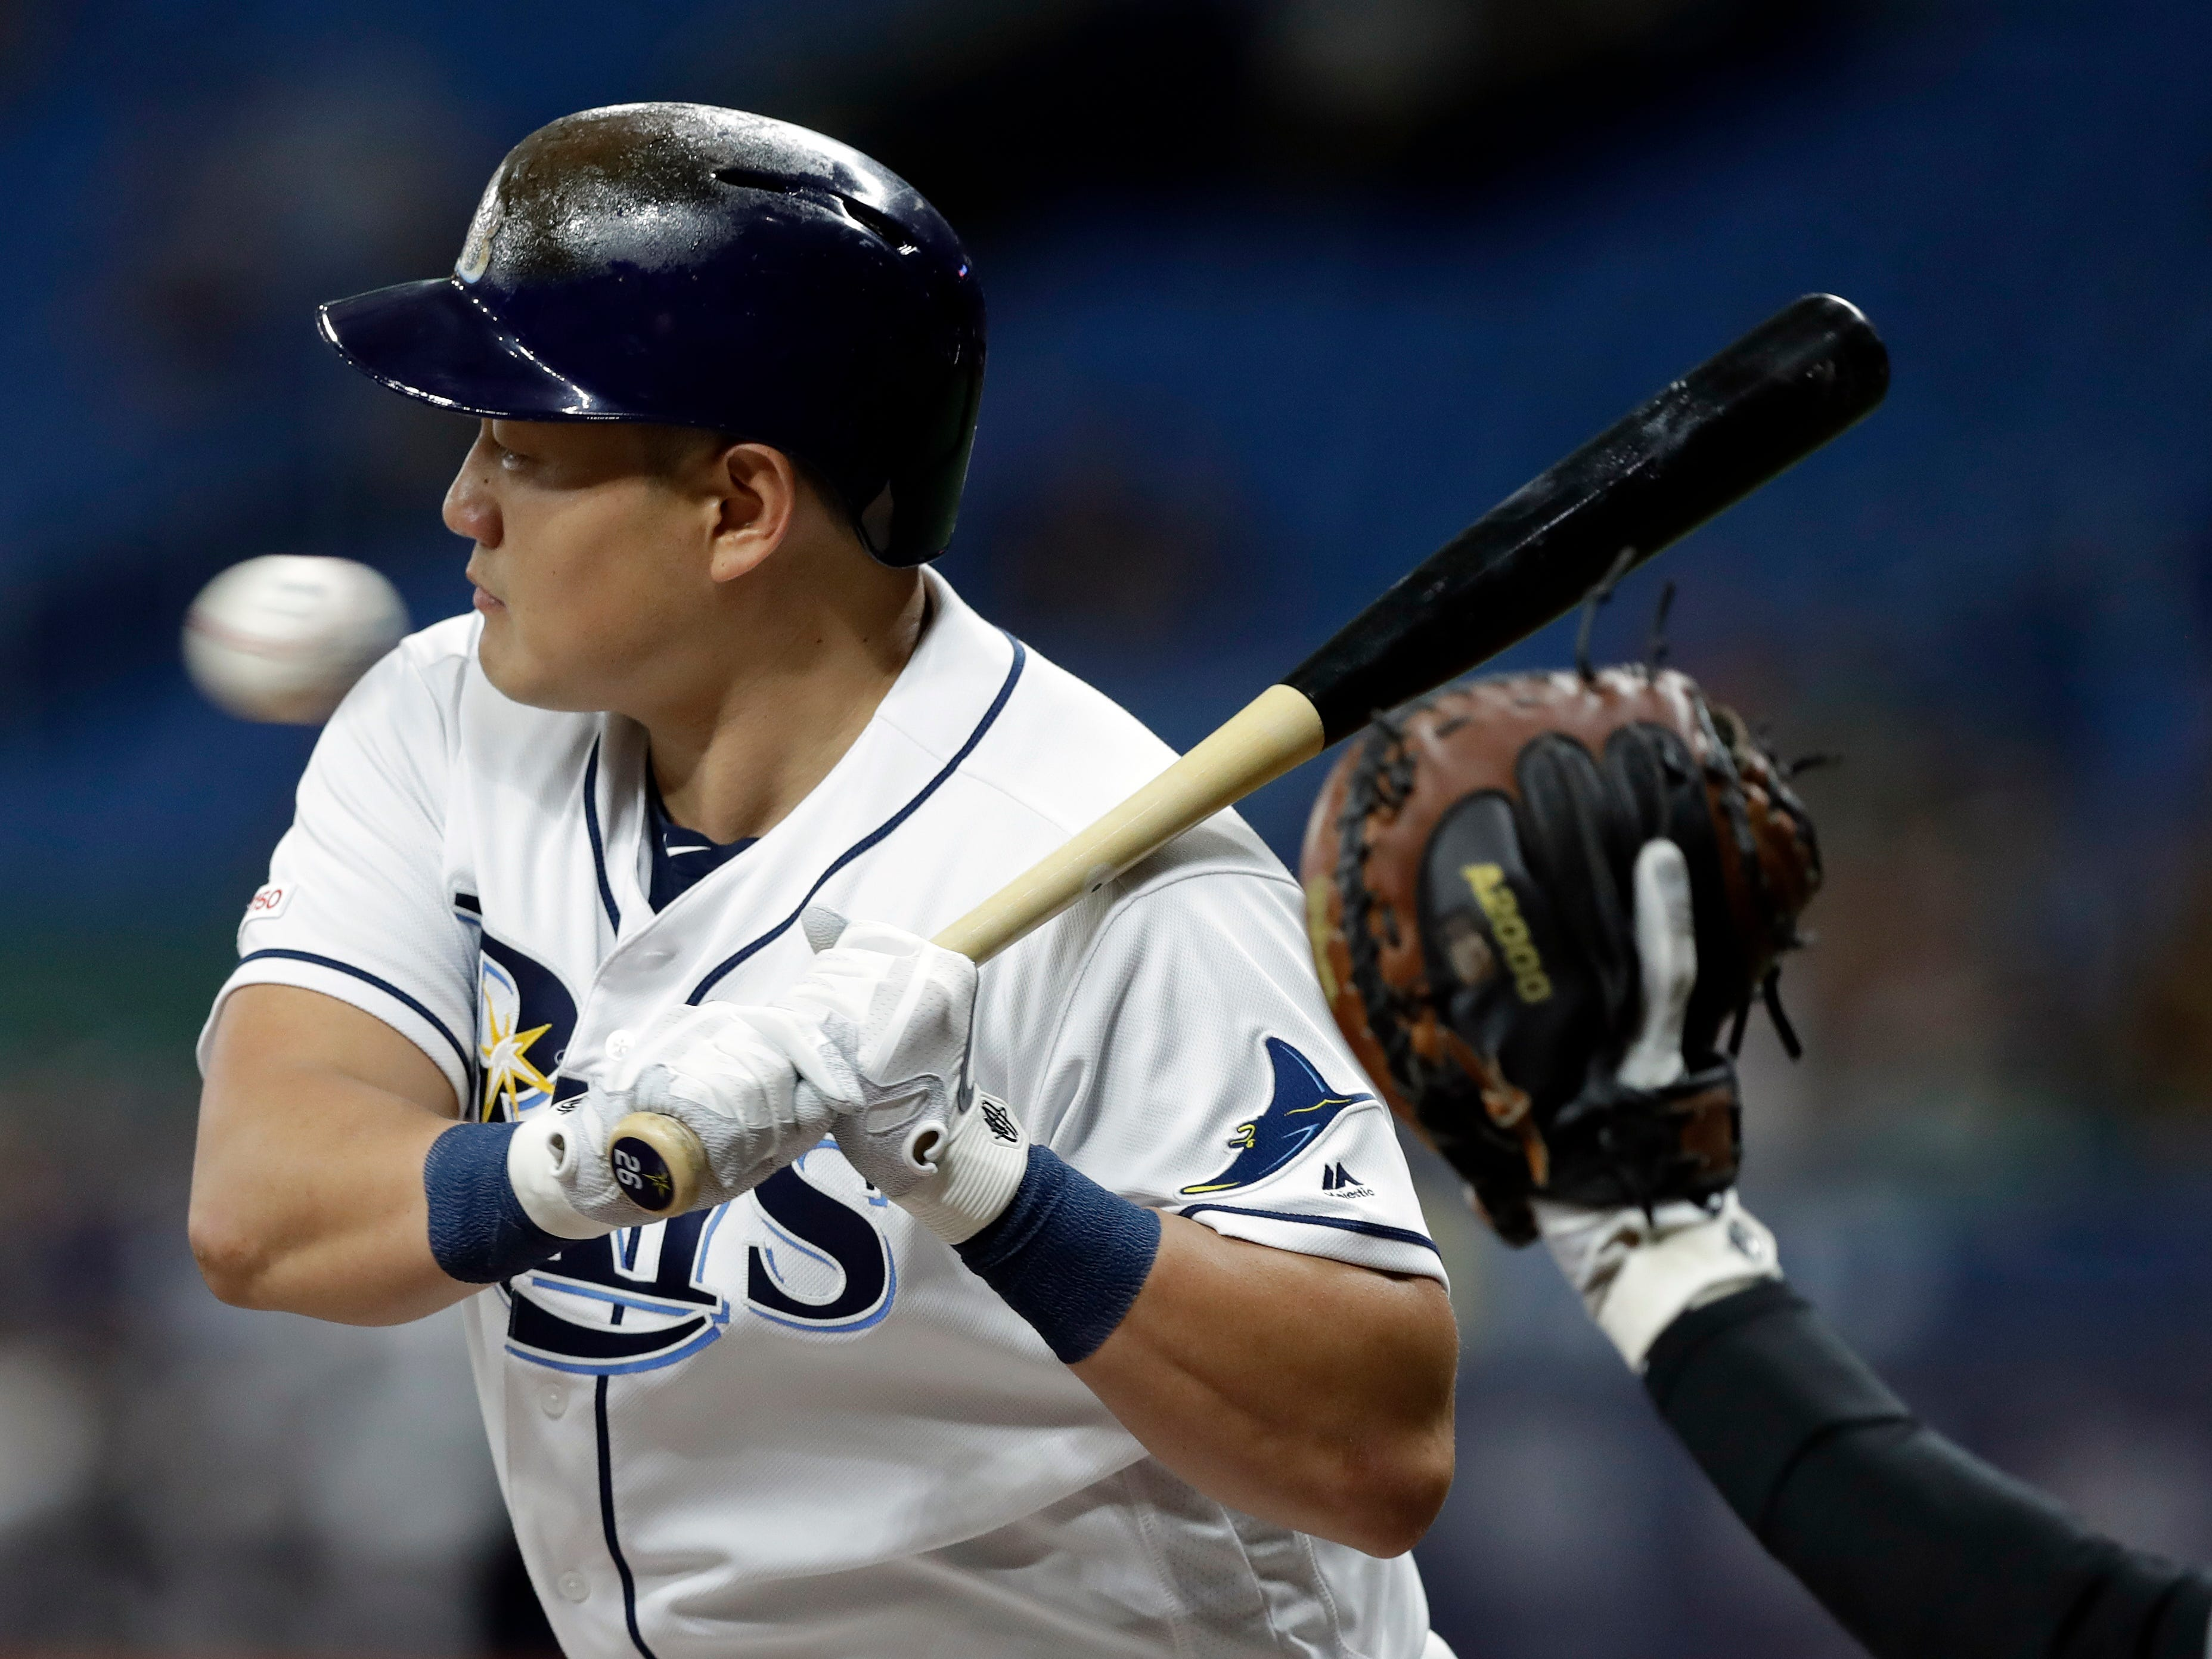 Tampa Bay Rays' Ji-Man Choi, of South Korea, takes an inside pitch from Arizona Diamondbacks starting pitcher Merrill Kelly during the first inning of a baseball game Monday, May 6, 2019, in St. Petersburg, Fla. (AP Photo/Chris O'Meara)